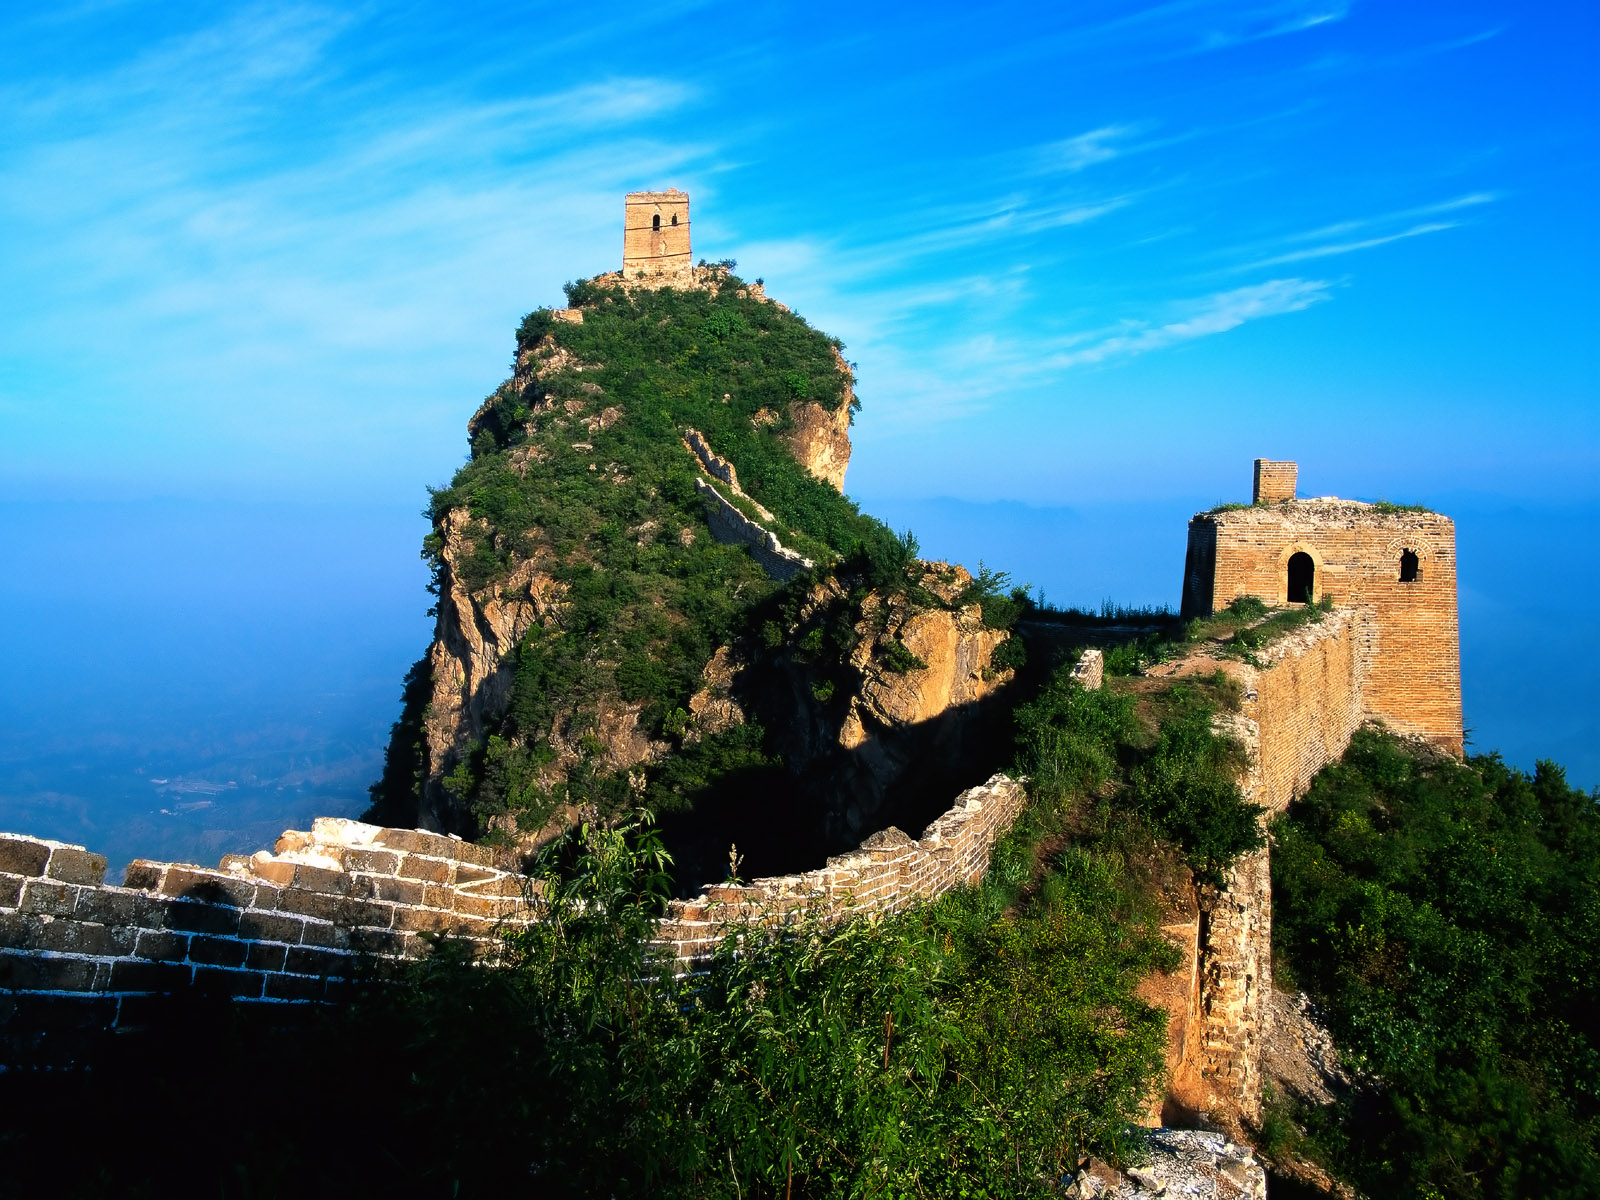 http://4.bp.blogspot.com/-eGaRstC2gYo/UAN5rR42WDI/AAAAAAAAEcY/T74p8Tecm3A/s1600/China_Great_wall_wallpaper.jpg